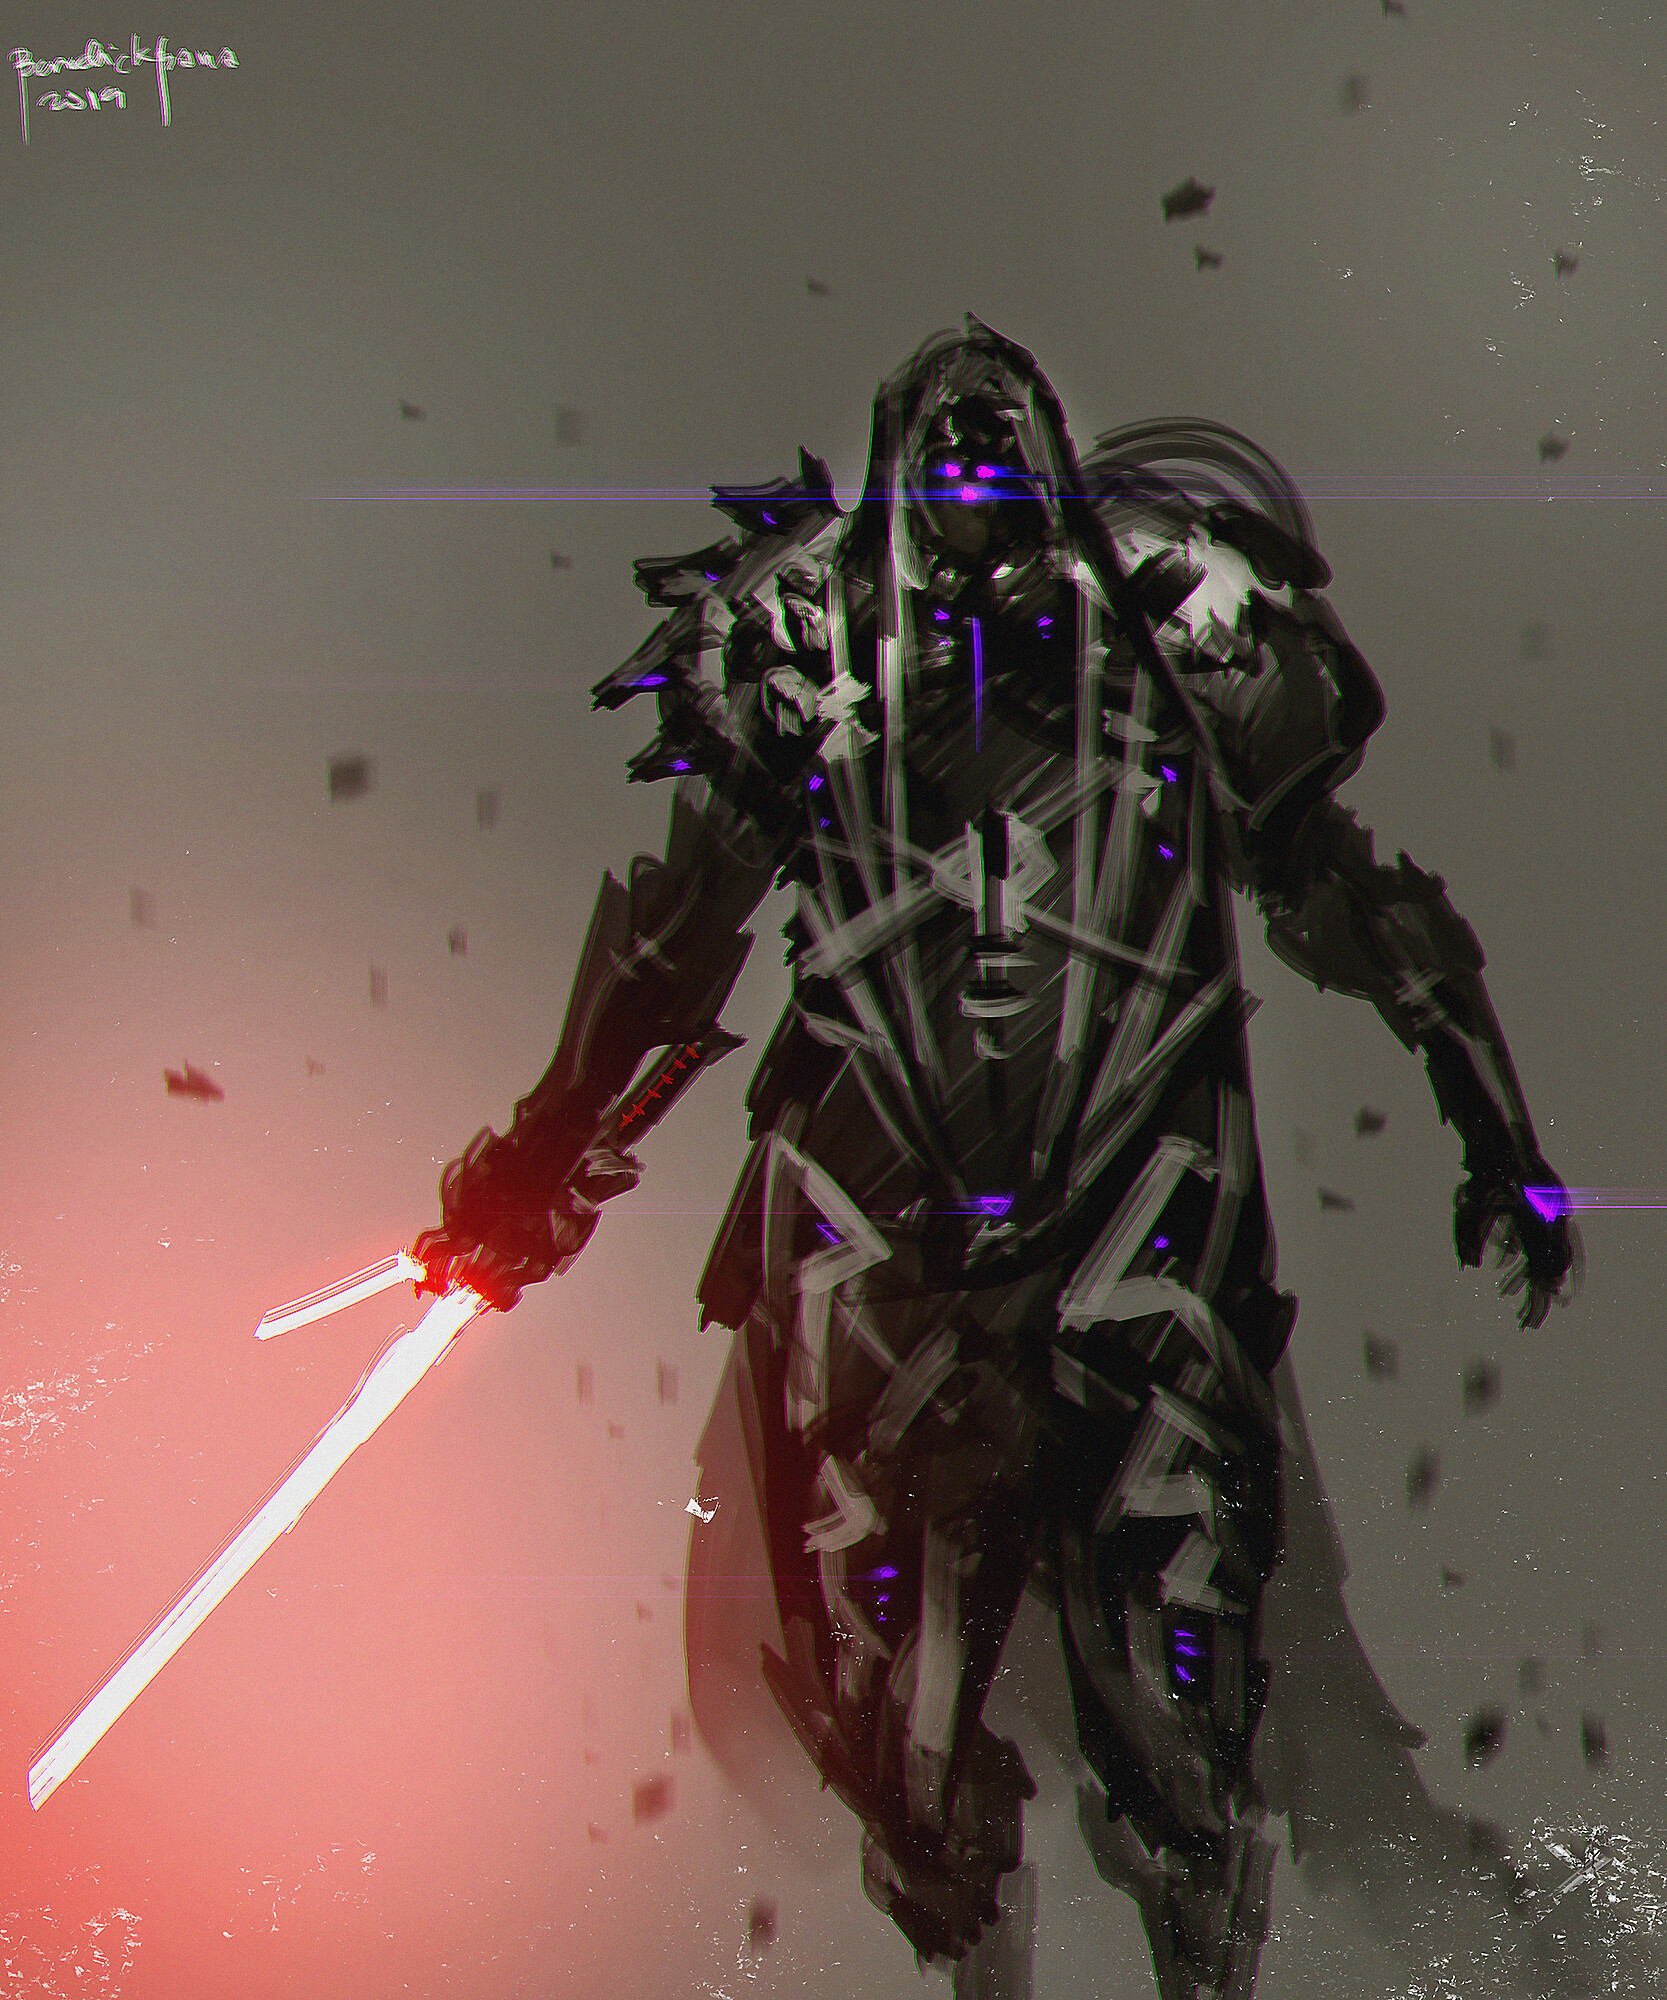 Renegade Sith - personal character design for Star Wars Fanart